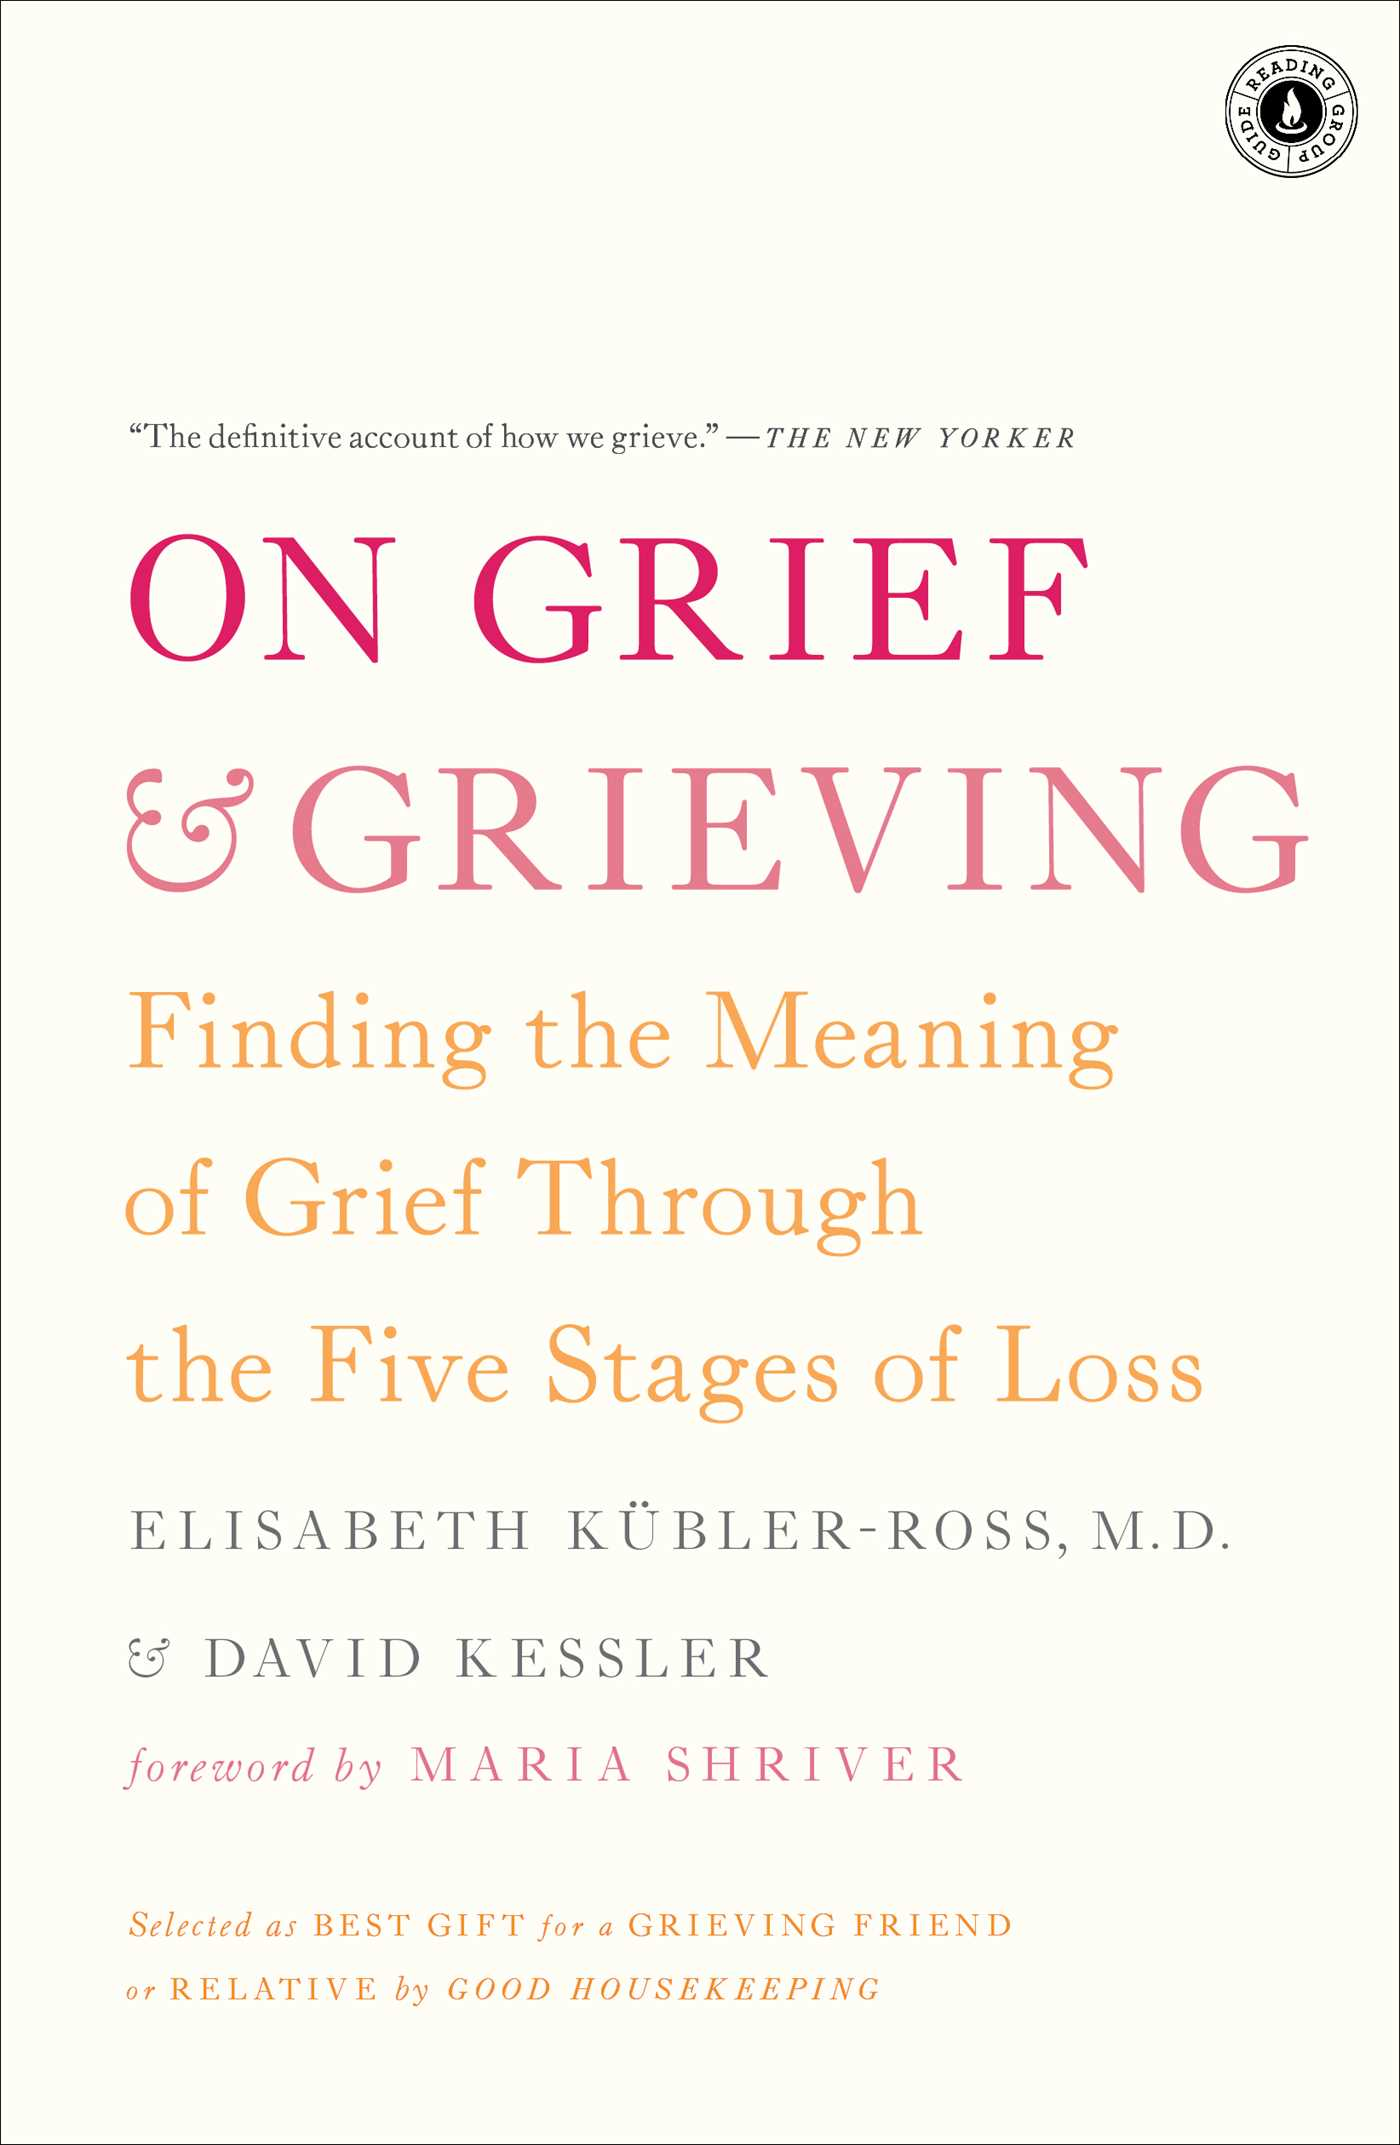 picture of a book titled on grief and grieving